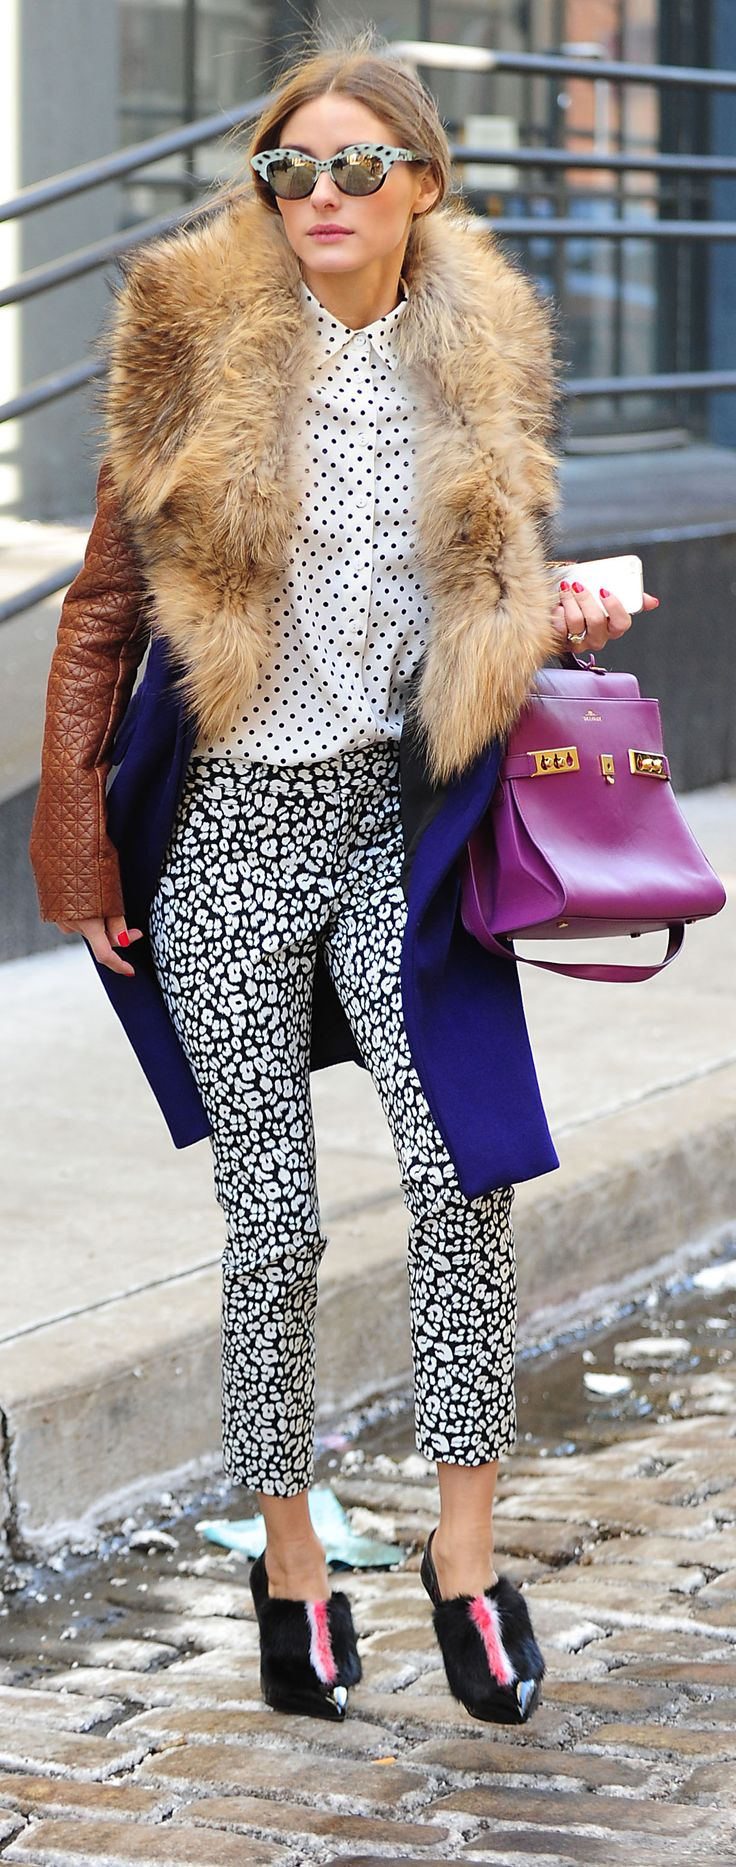 54 Times Olivia Palermo Made Me Hate My Outfit